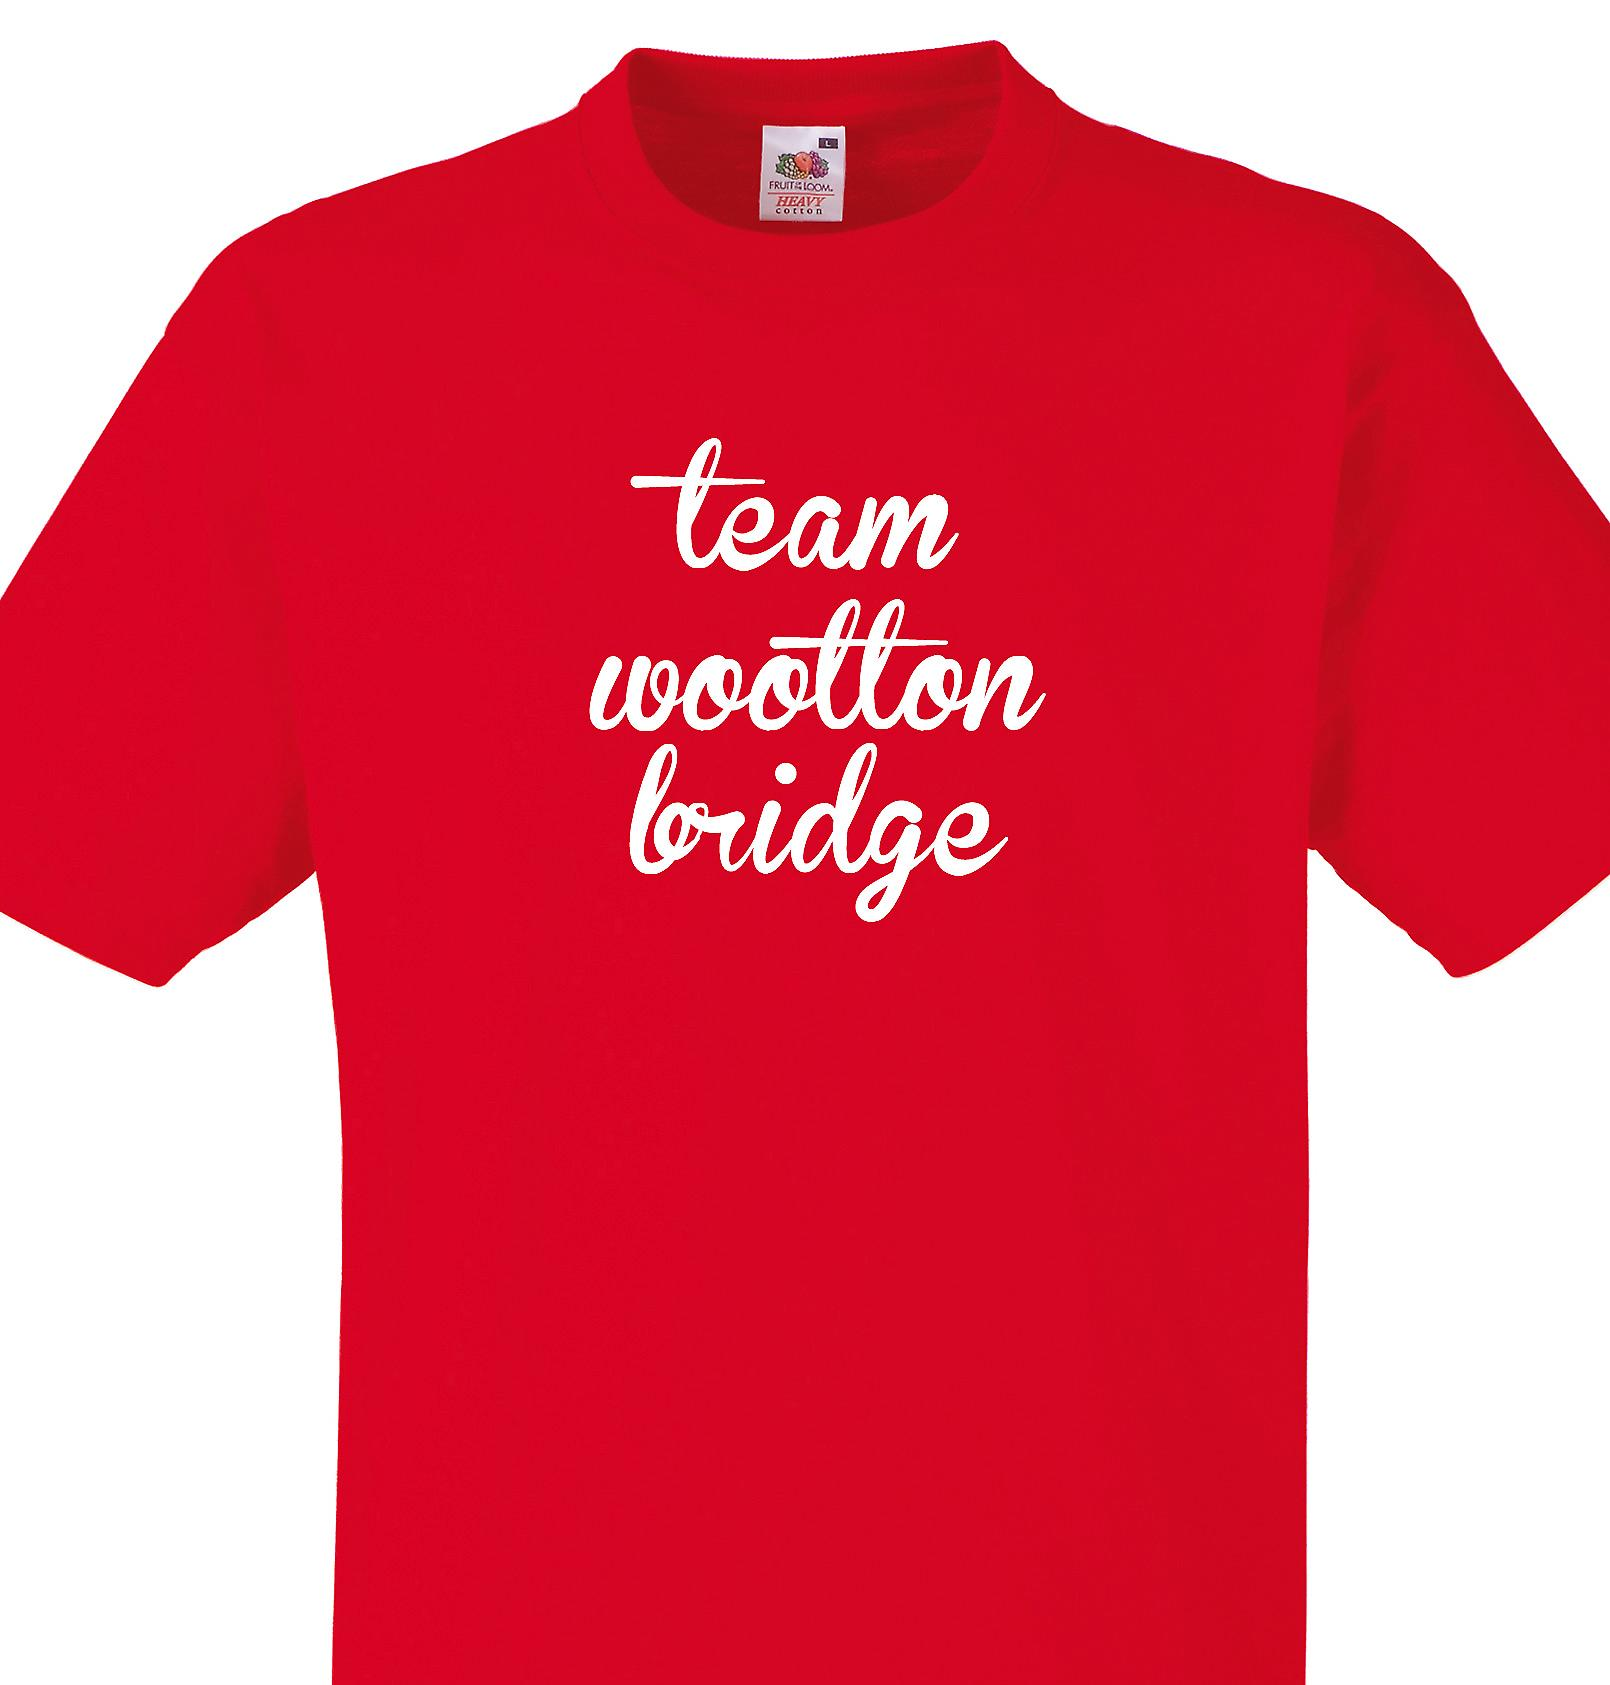 Team Wootton bridge Red T shirt